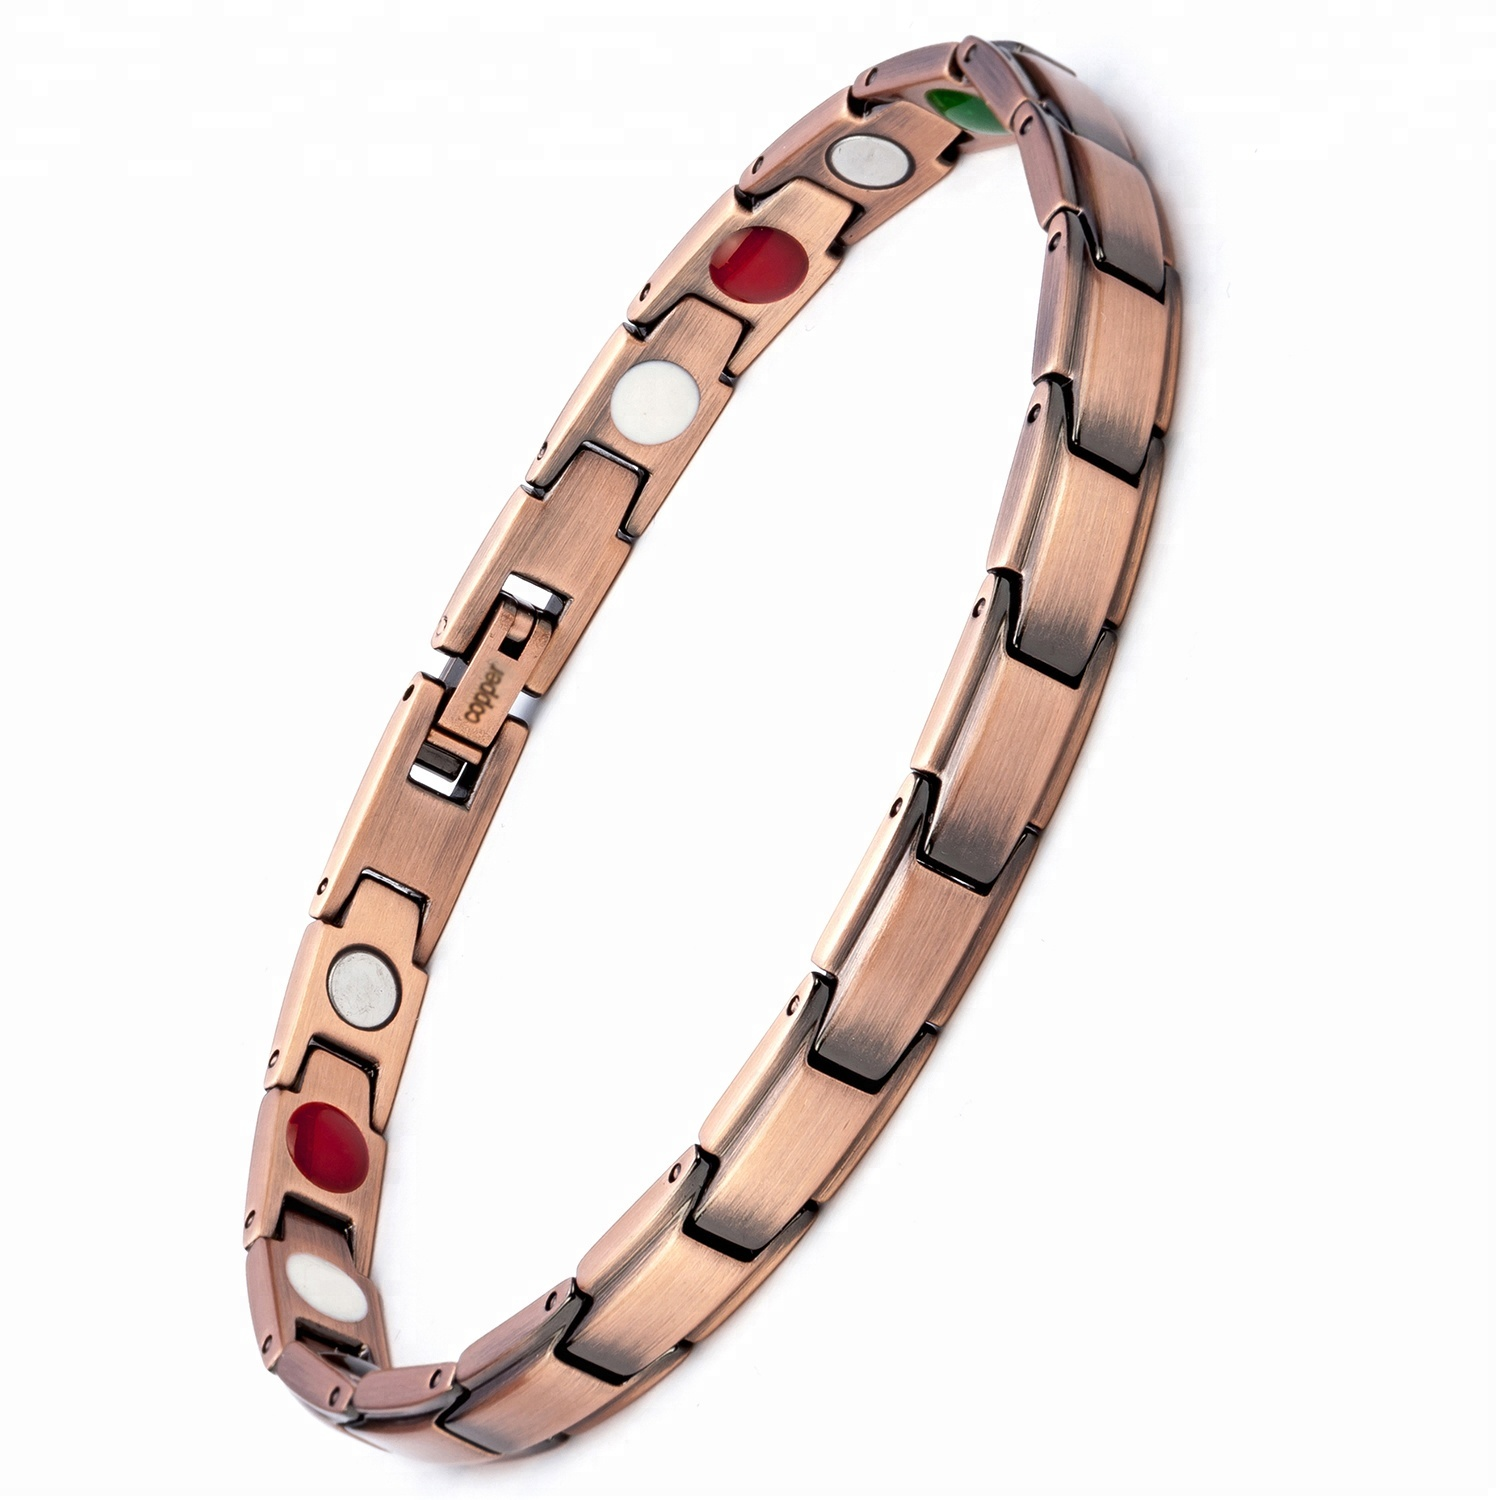 Shenzhen Migaga Magnetic Therapy 316L Stainless Steel Full Magnets Or 4 In 1 Accept Custom Colors Bracelet Women